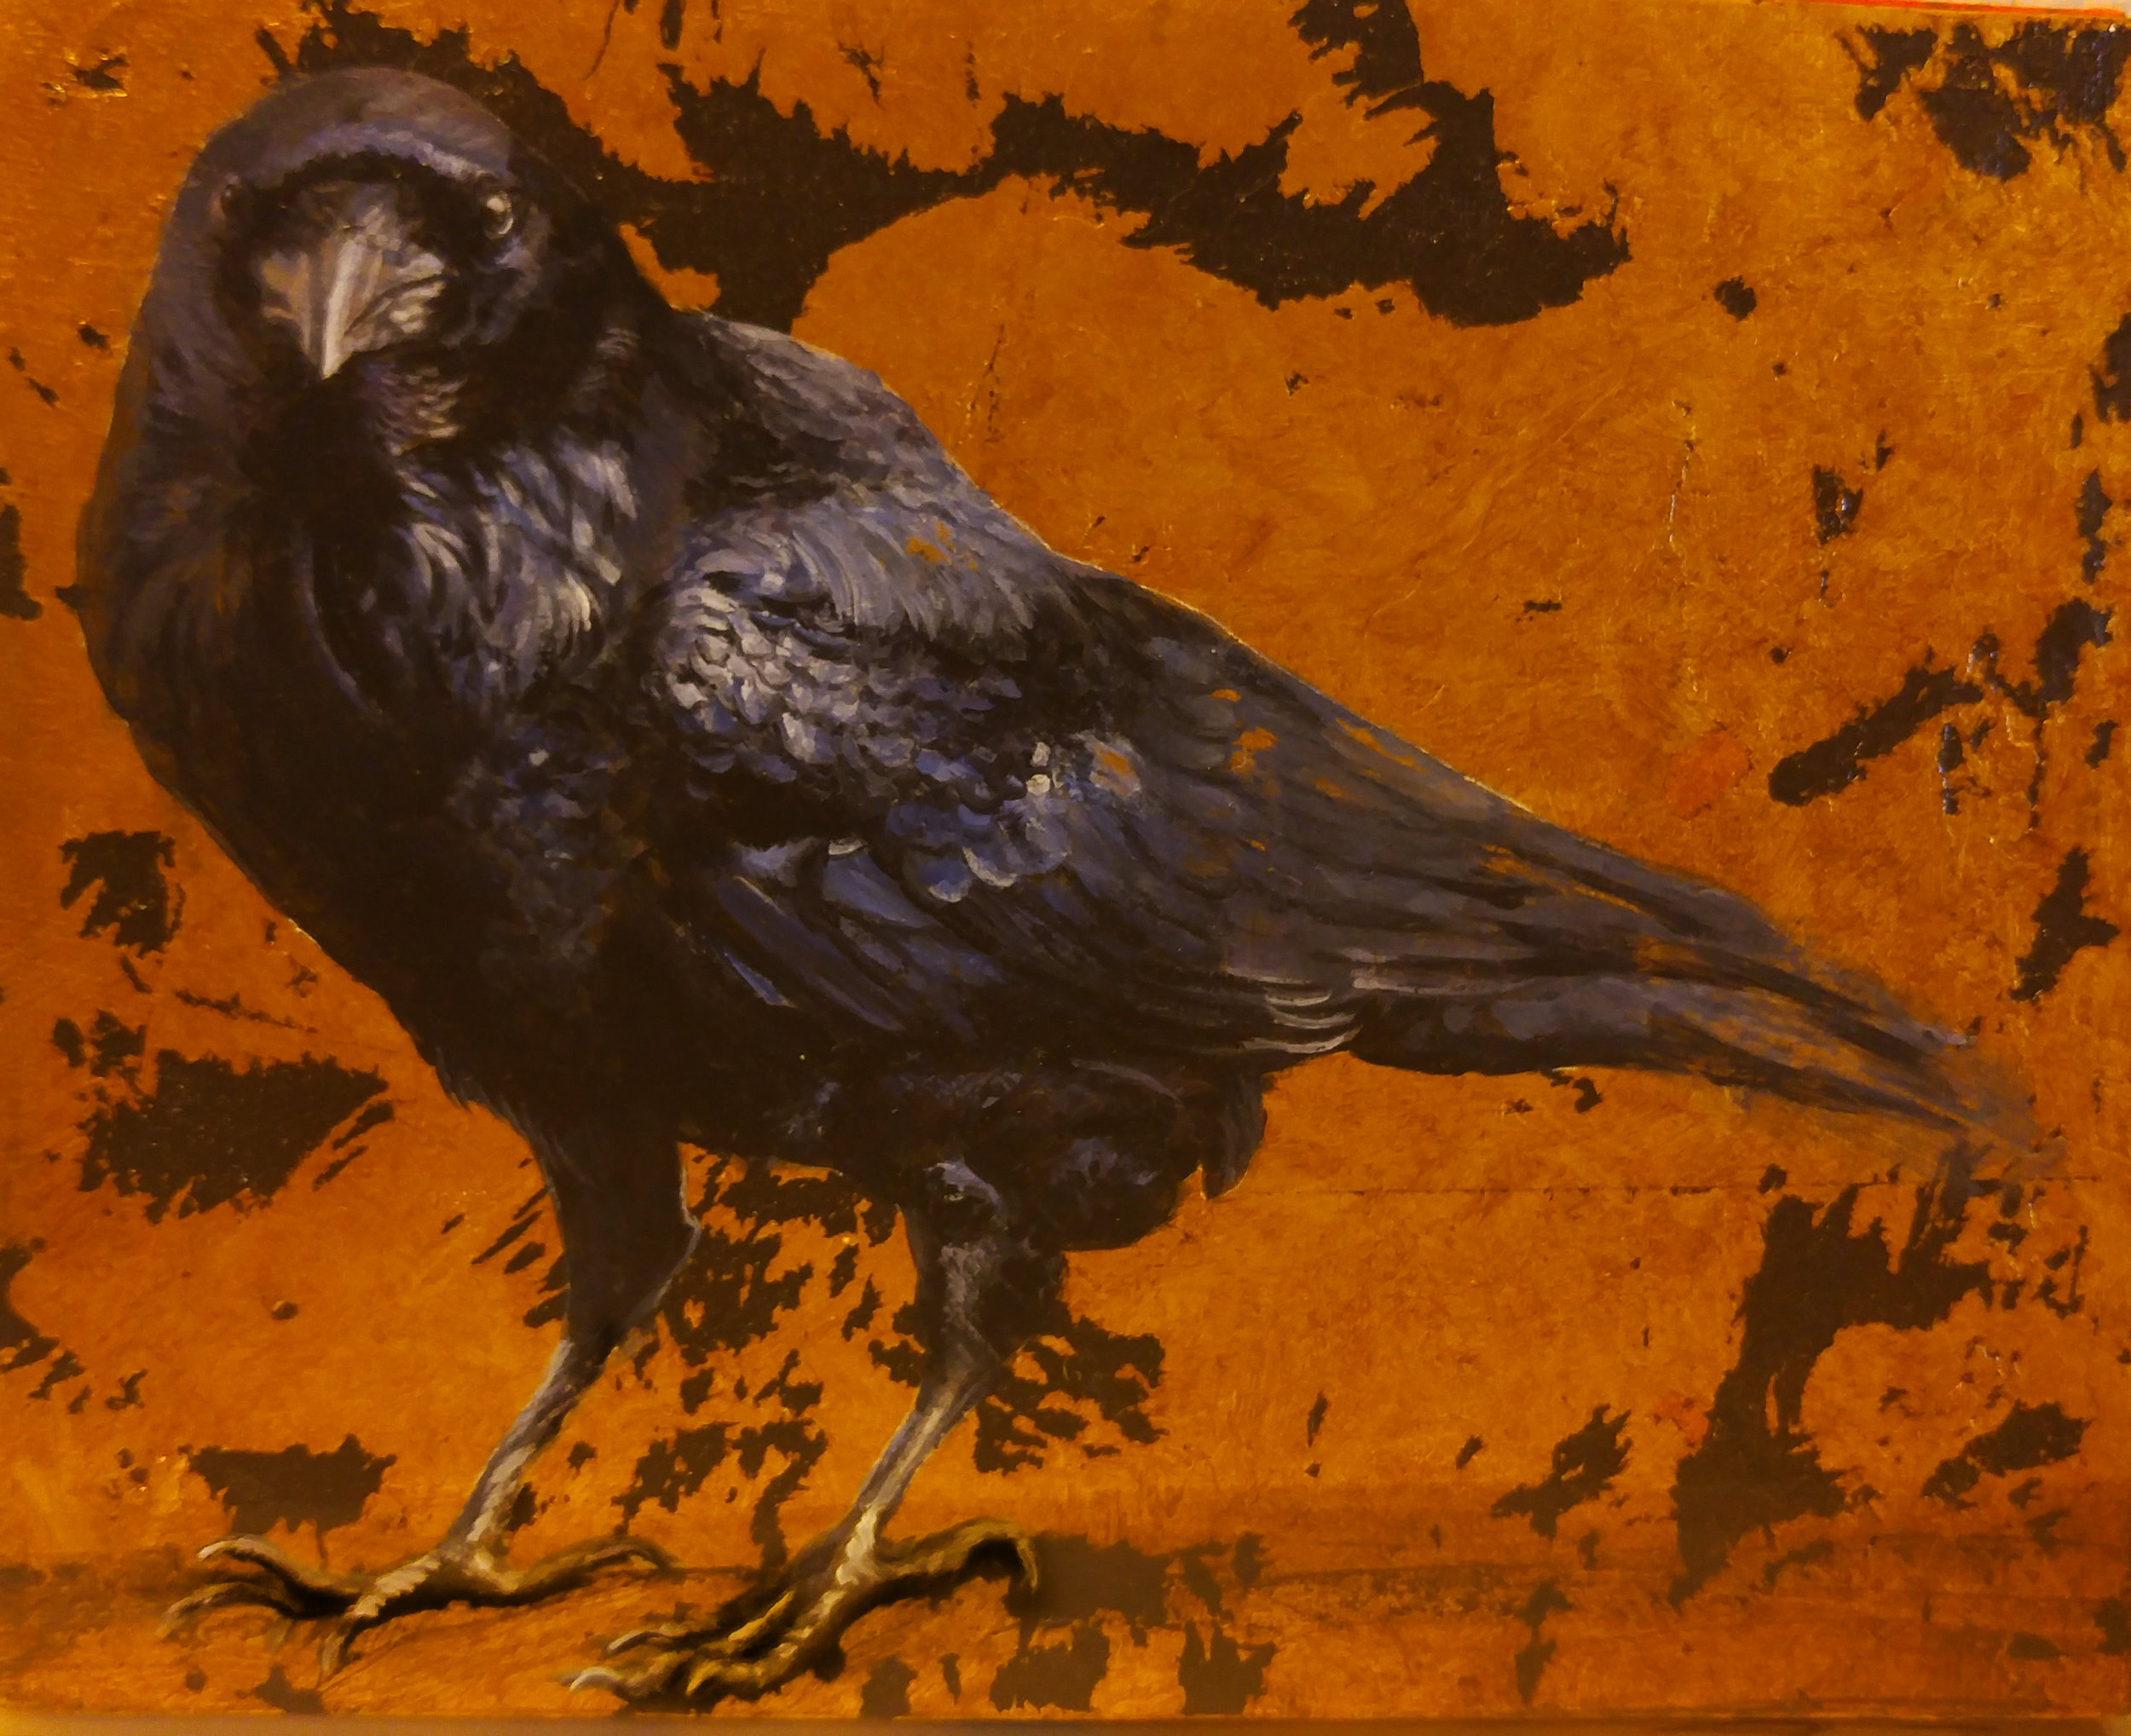 """Raven on Gold"" by Sabra Crockett, 8x10in, acrylic and gold leaf on canvas, $460 